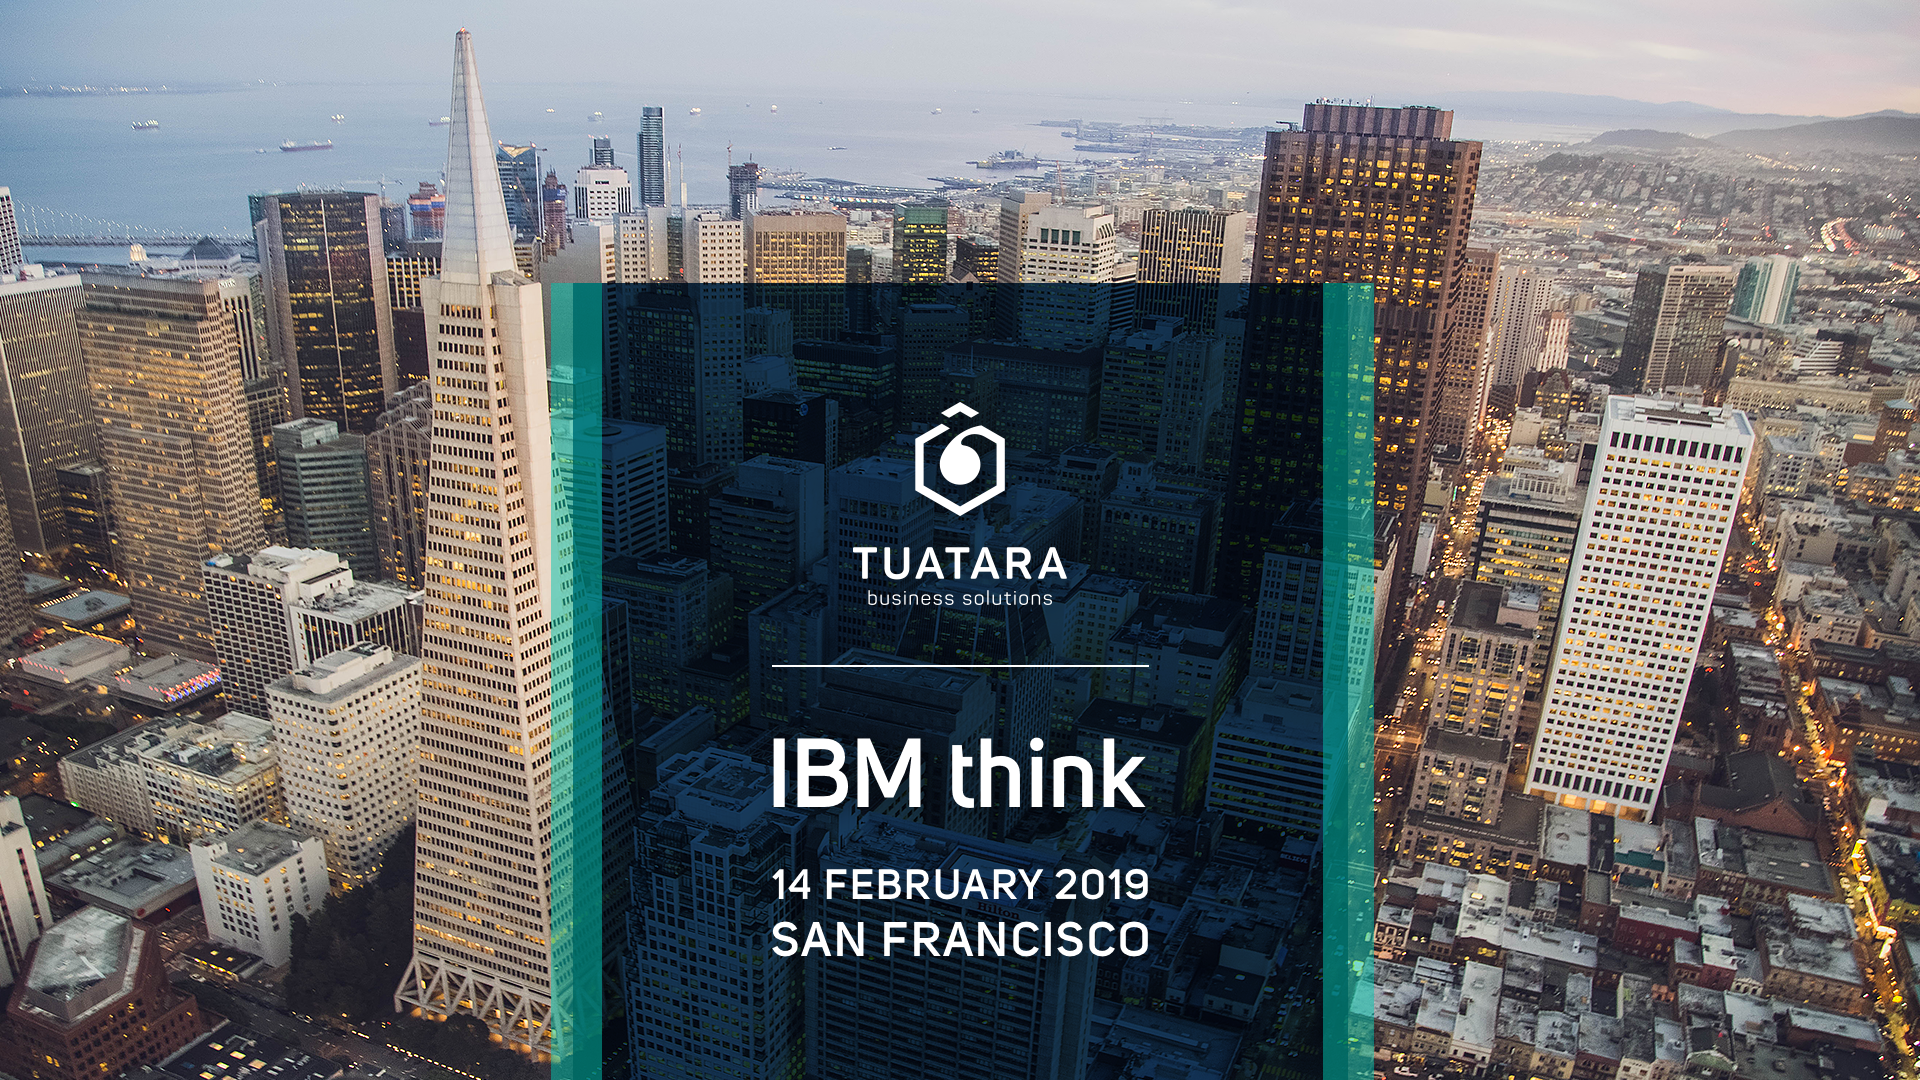 FB_IBMthink2019.png